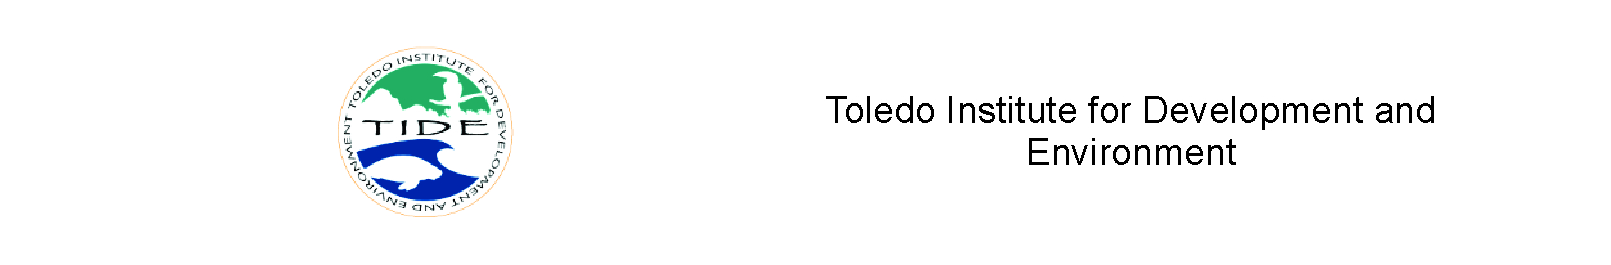 Toledo Institute for Development and Environment